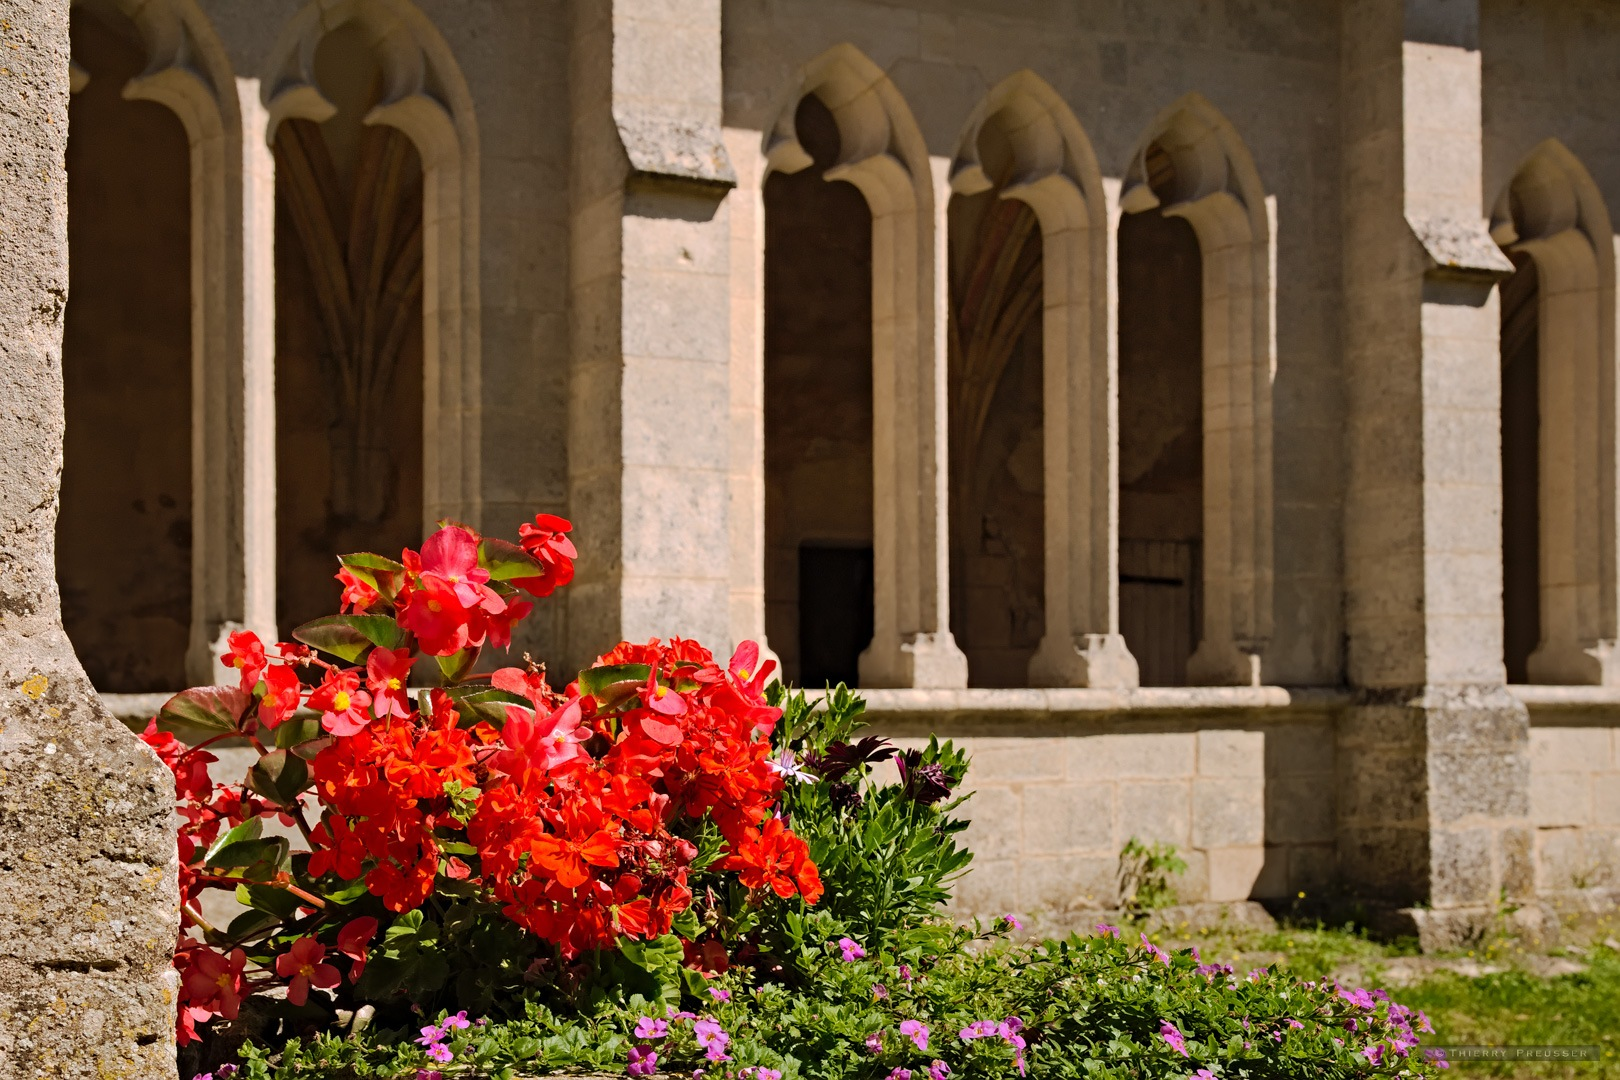 The flowery cloister by Thierry Preusser